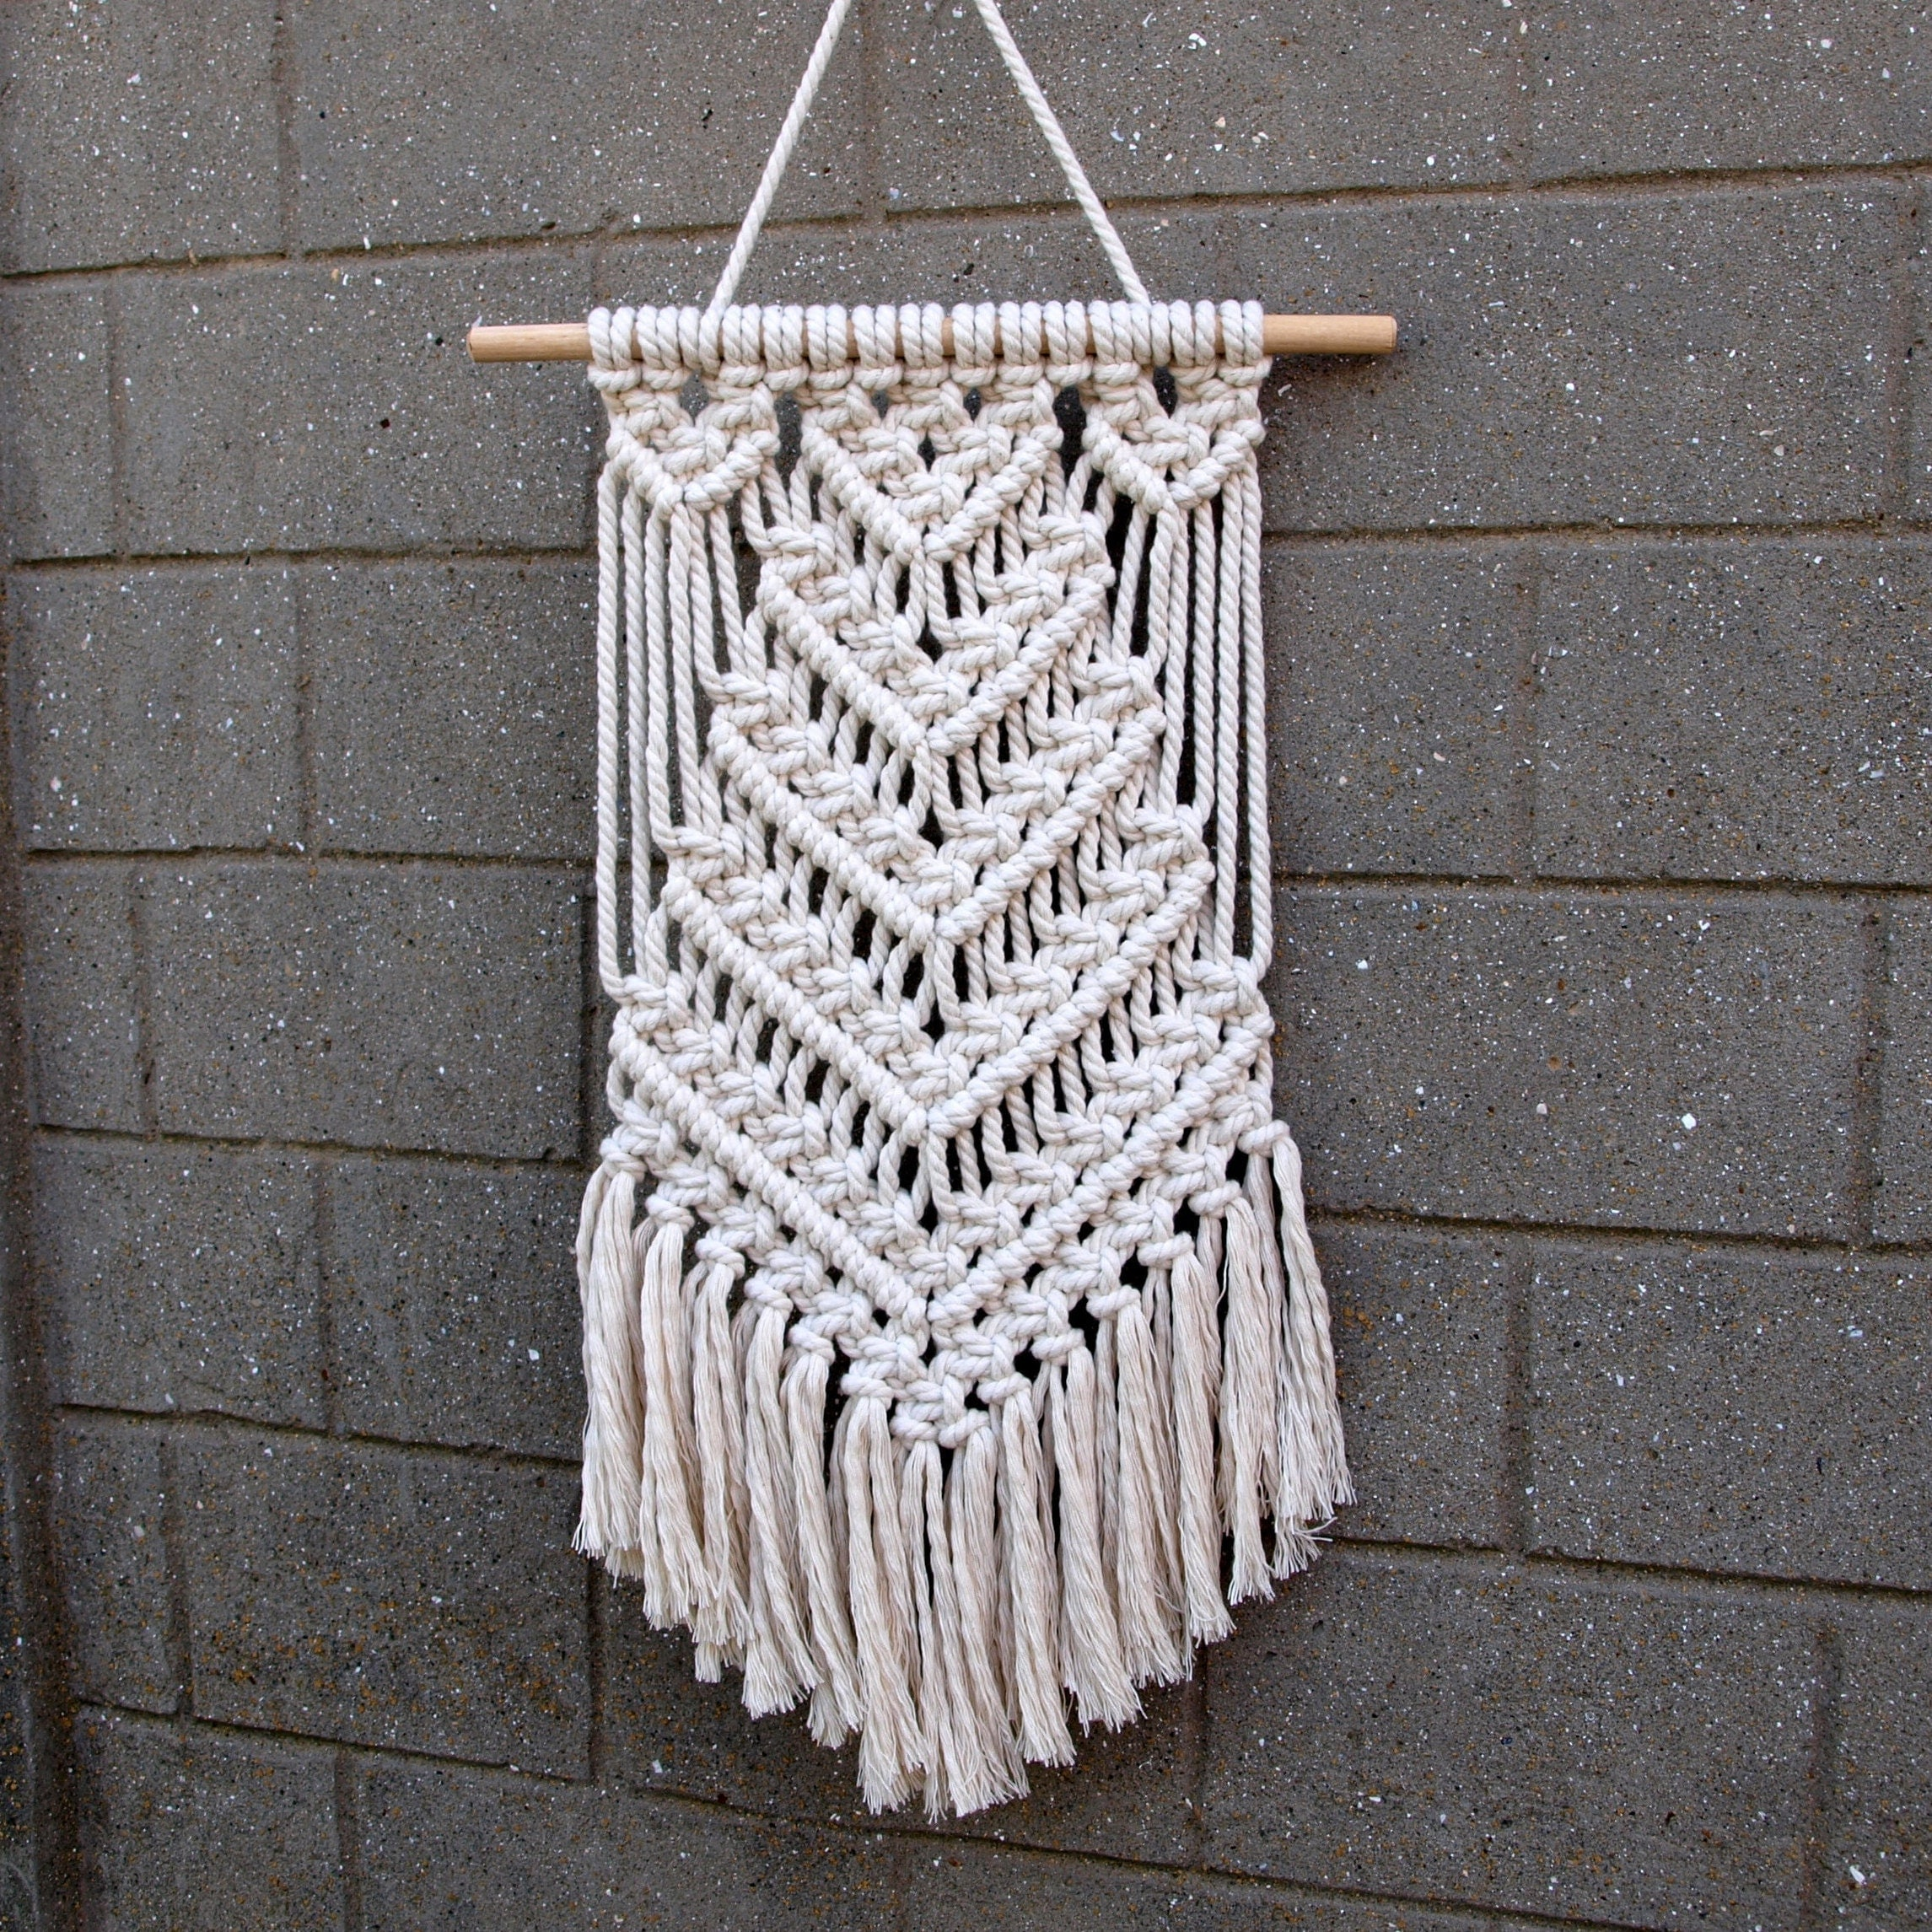 Crochet And Macrame Home Decor By PapuShoi On Etsy